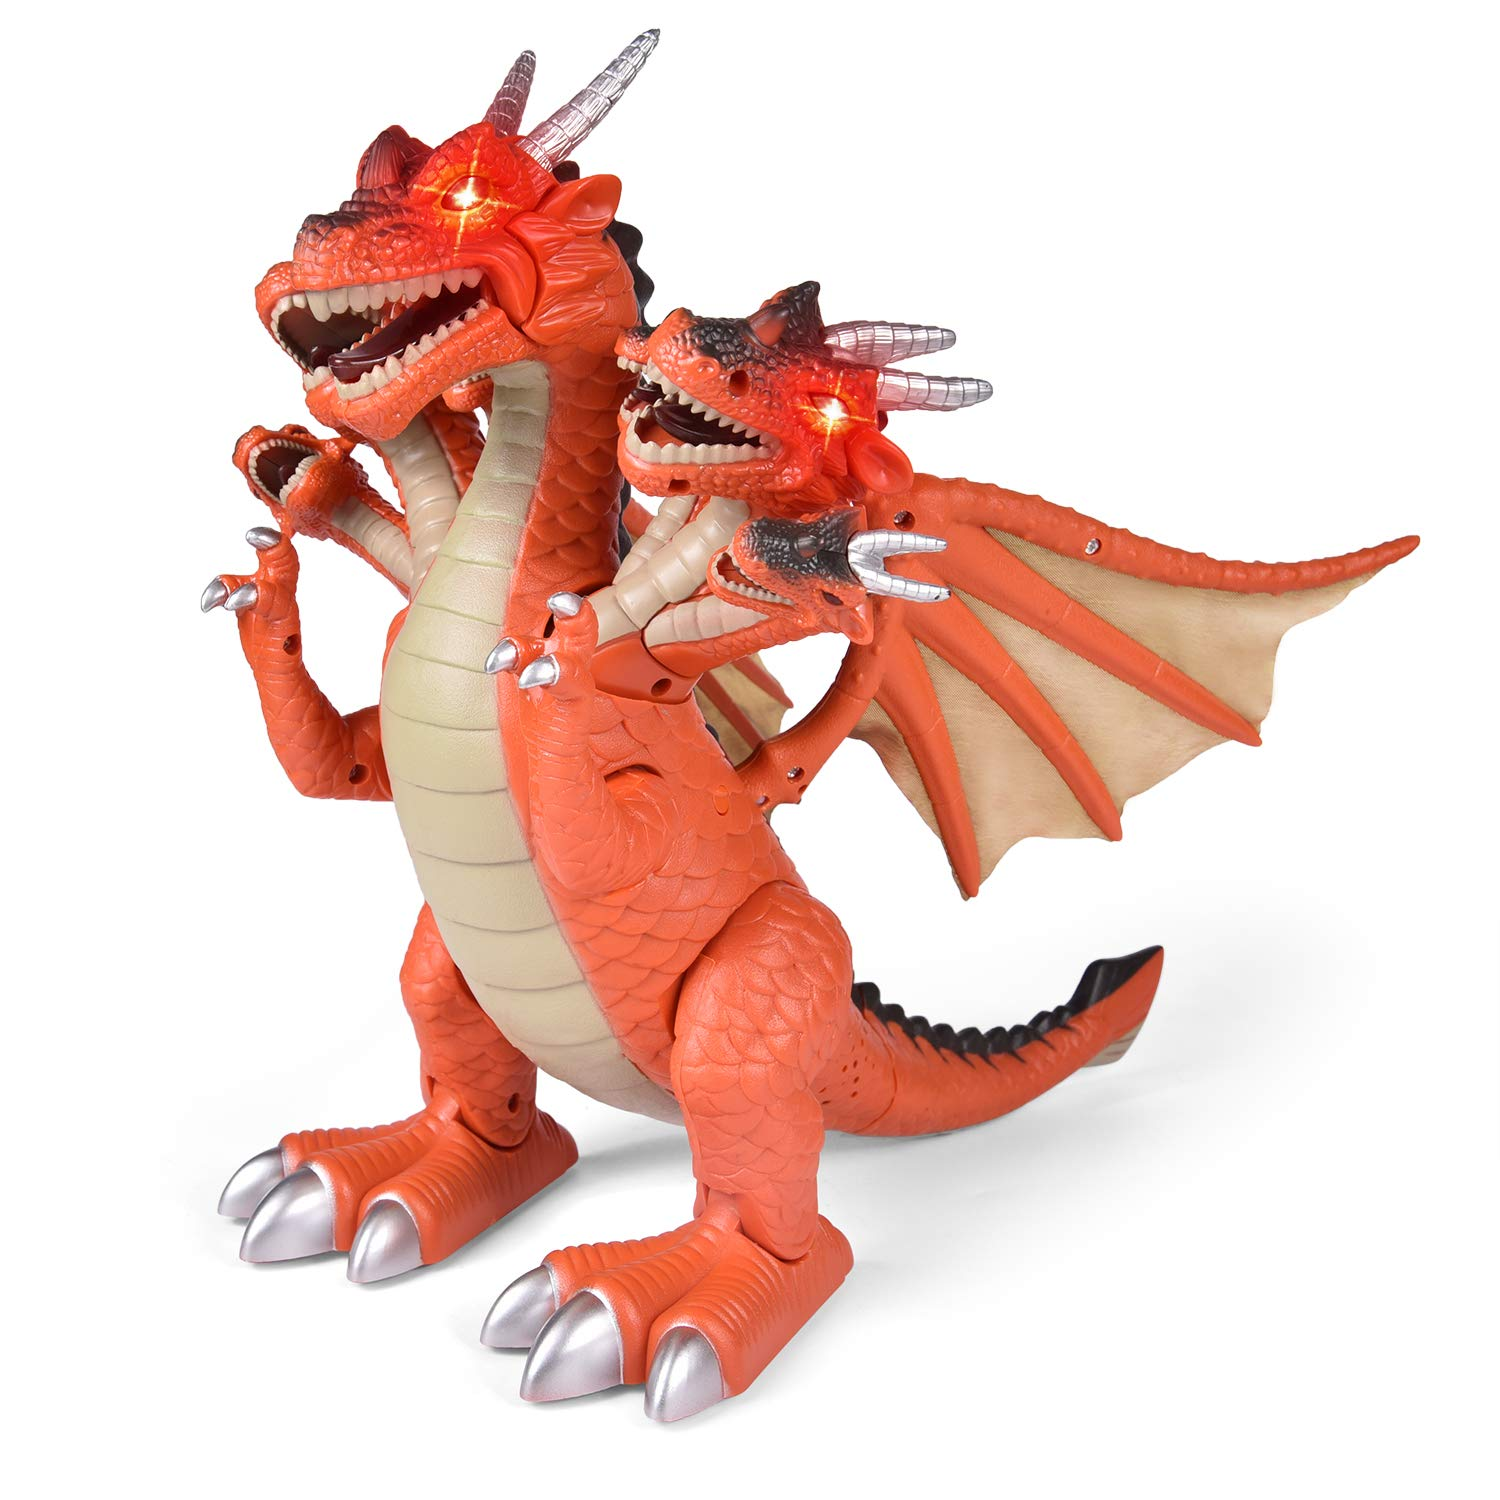 Dragon Toys for Boys, Seven Heads Walking Dragon 11.8''(L)×11.4''(H) Large Size with Lights and Sounds